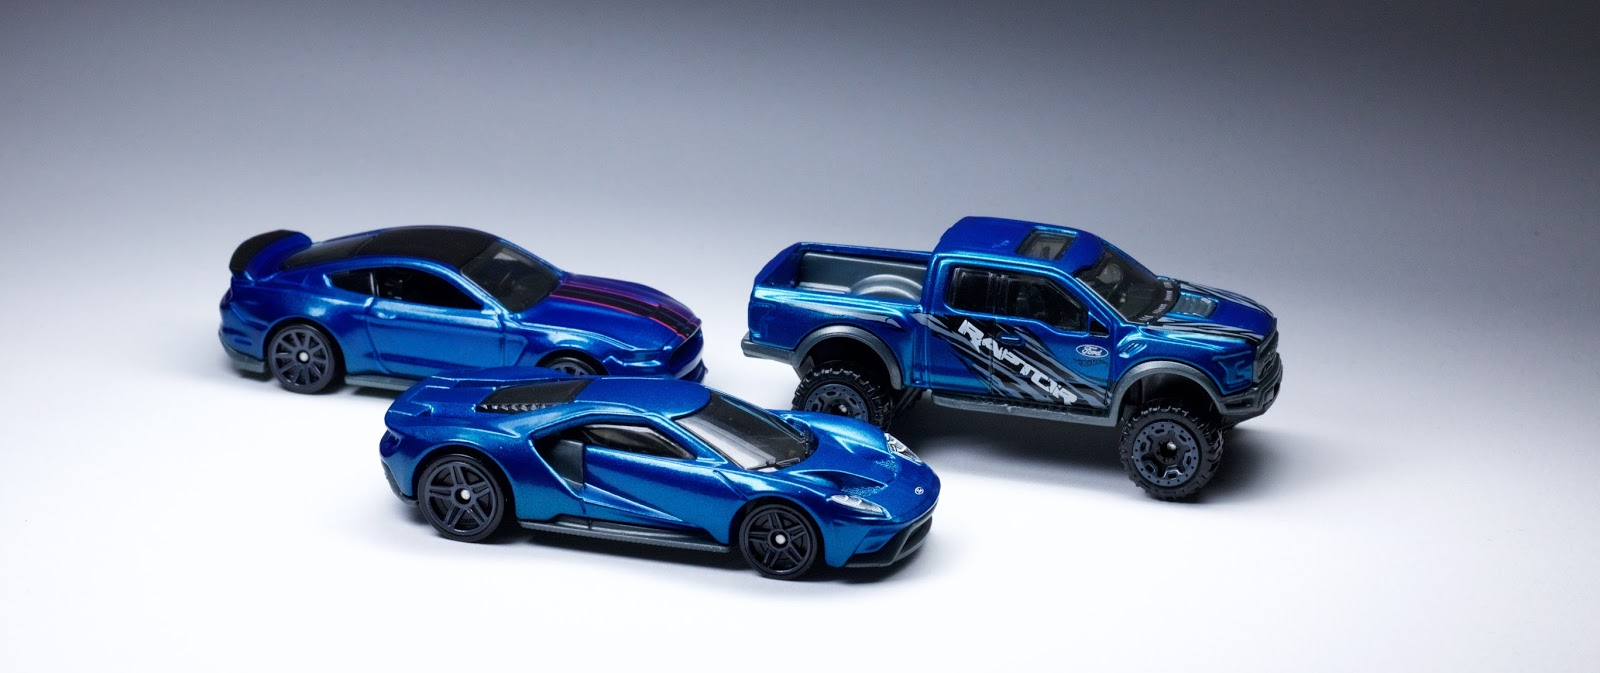 The Liquid Blue Trifecta Is Complete With The Debut Of The Hot Wheels  Ford Gt